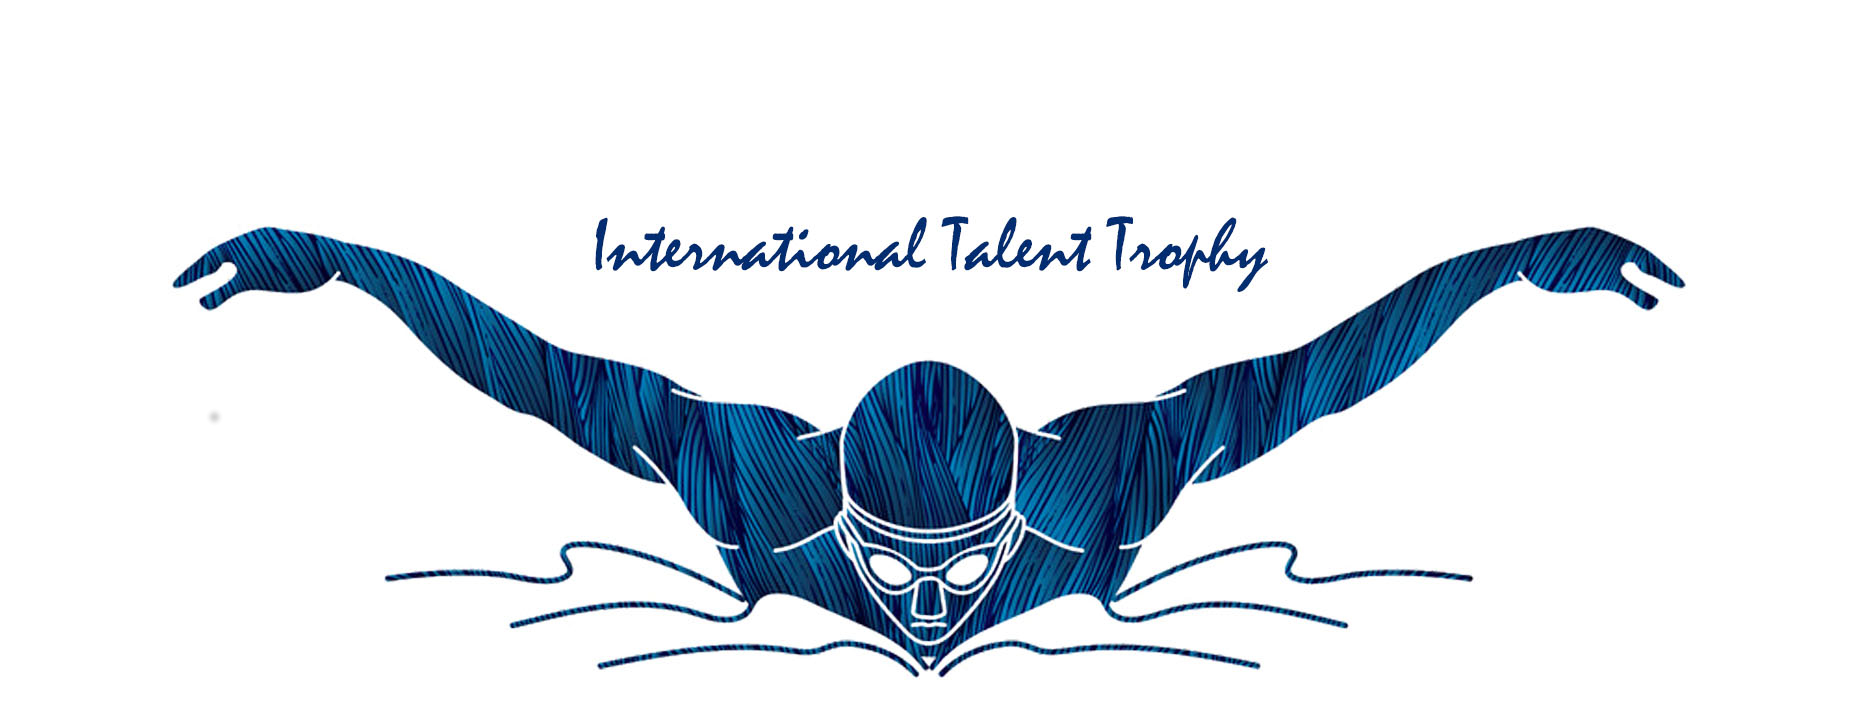 International Talent Trophy